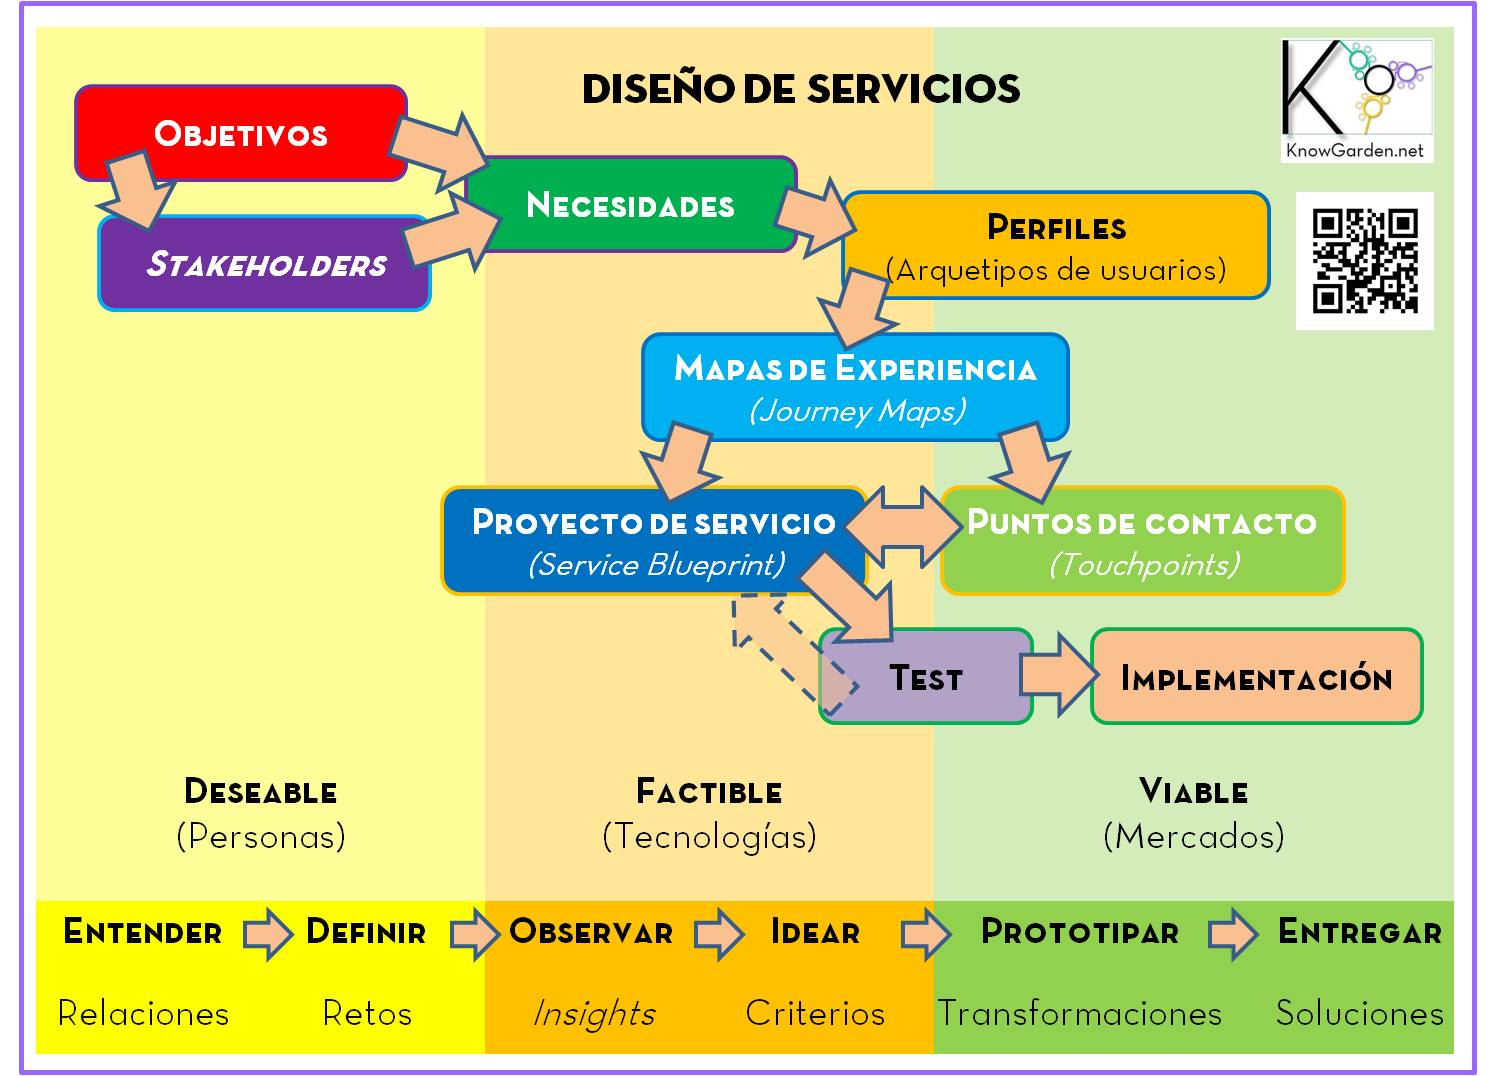 Diseo de servicios were always in the knowgarden los momentos de servicio moments of truth o service encounters y los trayectos de decisin del usuario service string o customer journey malvernweather Image collections